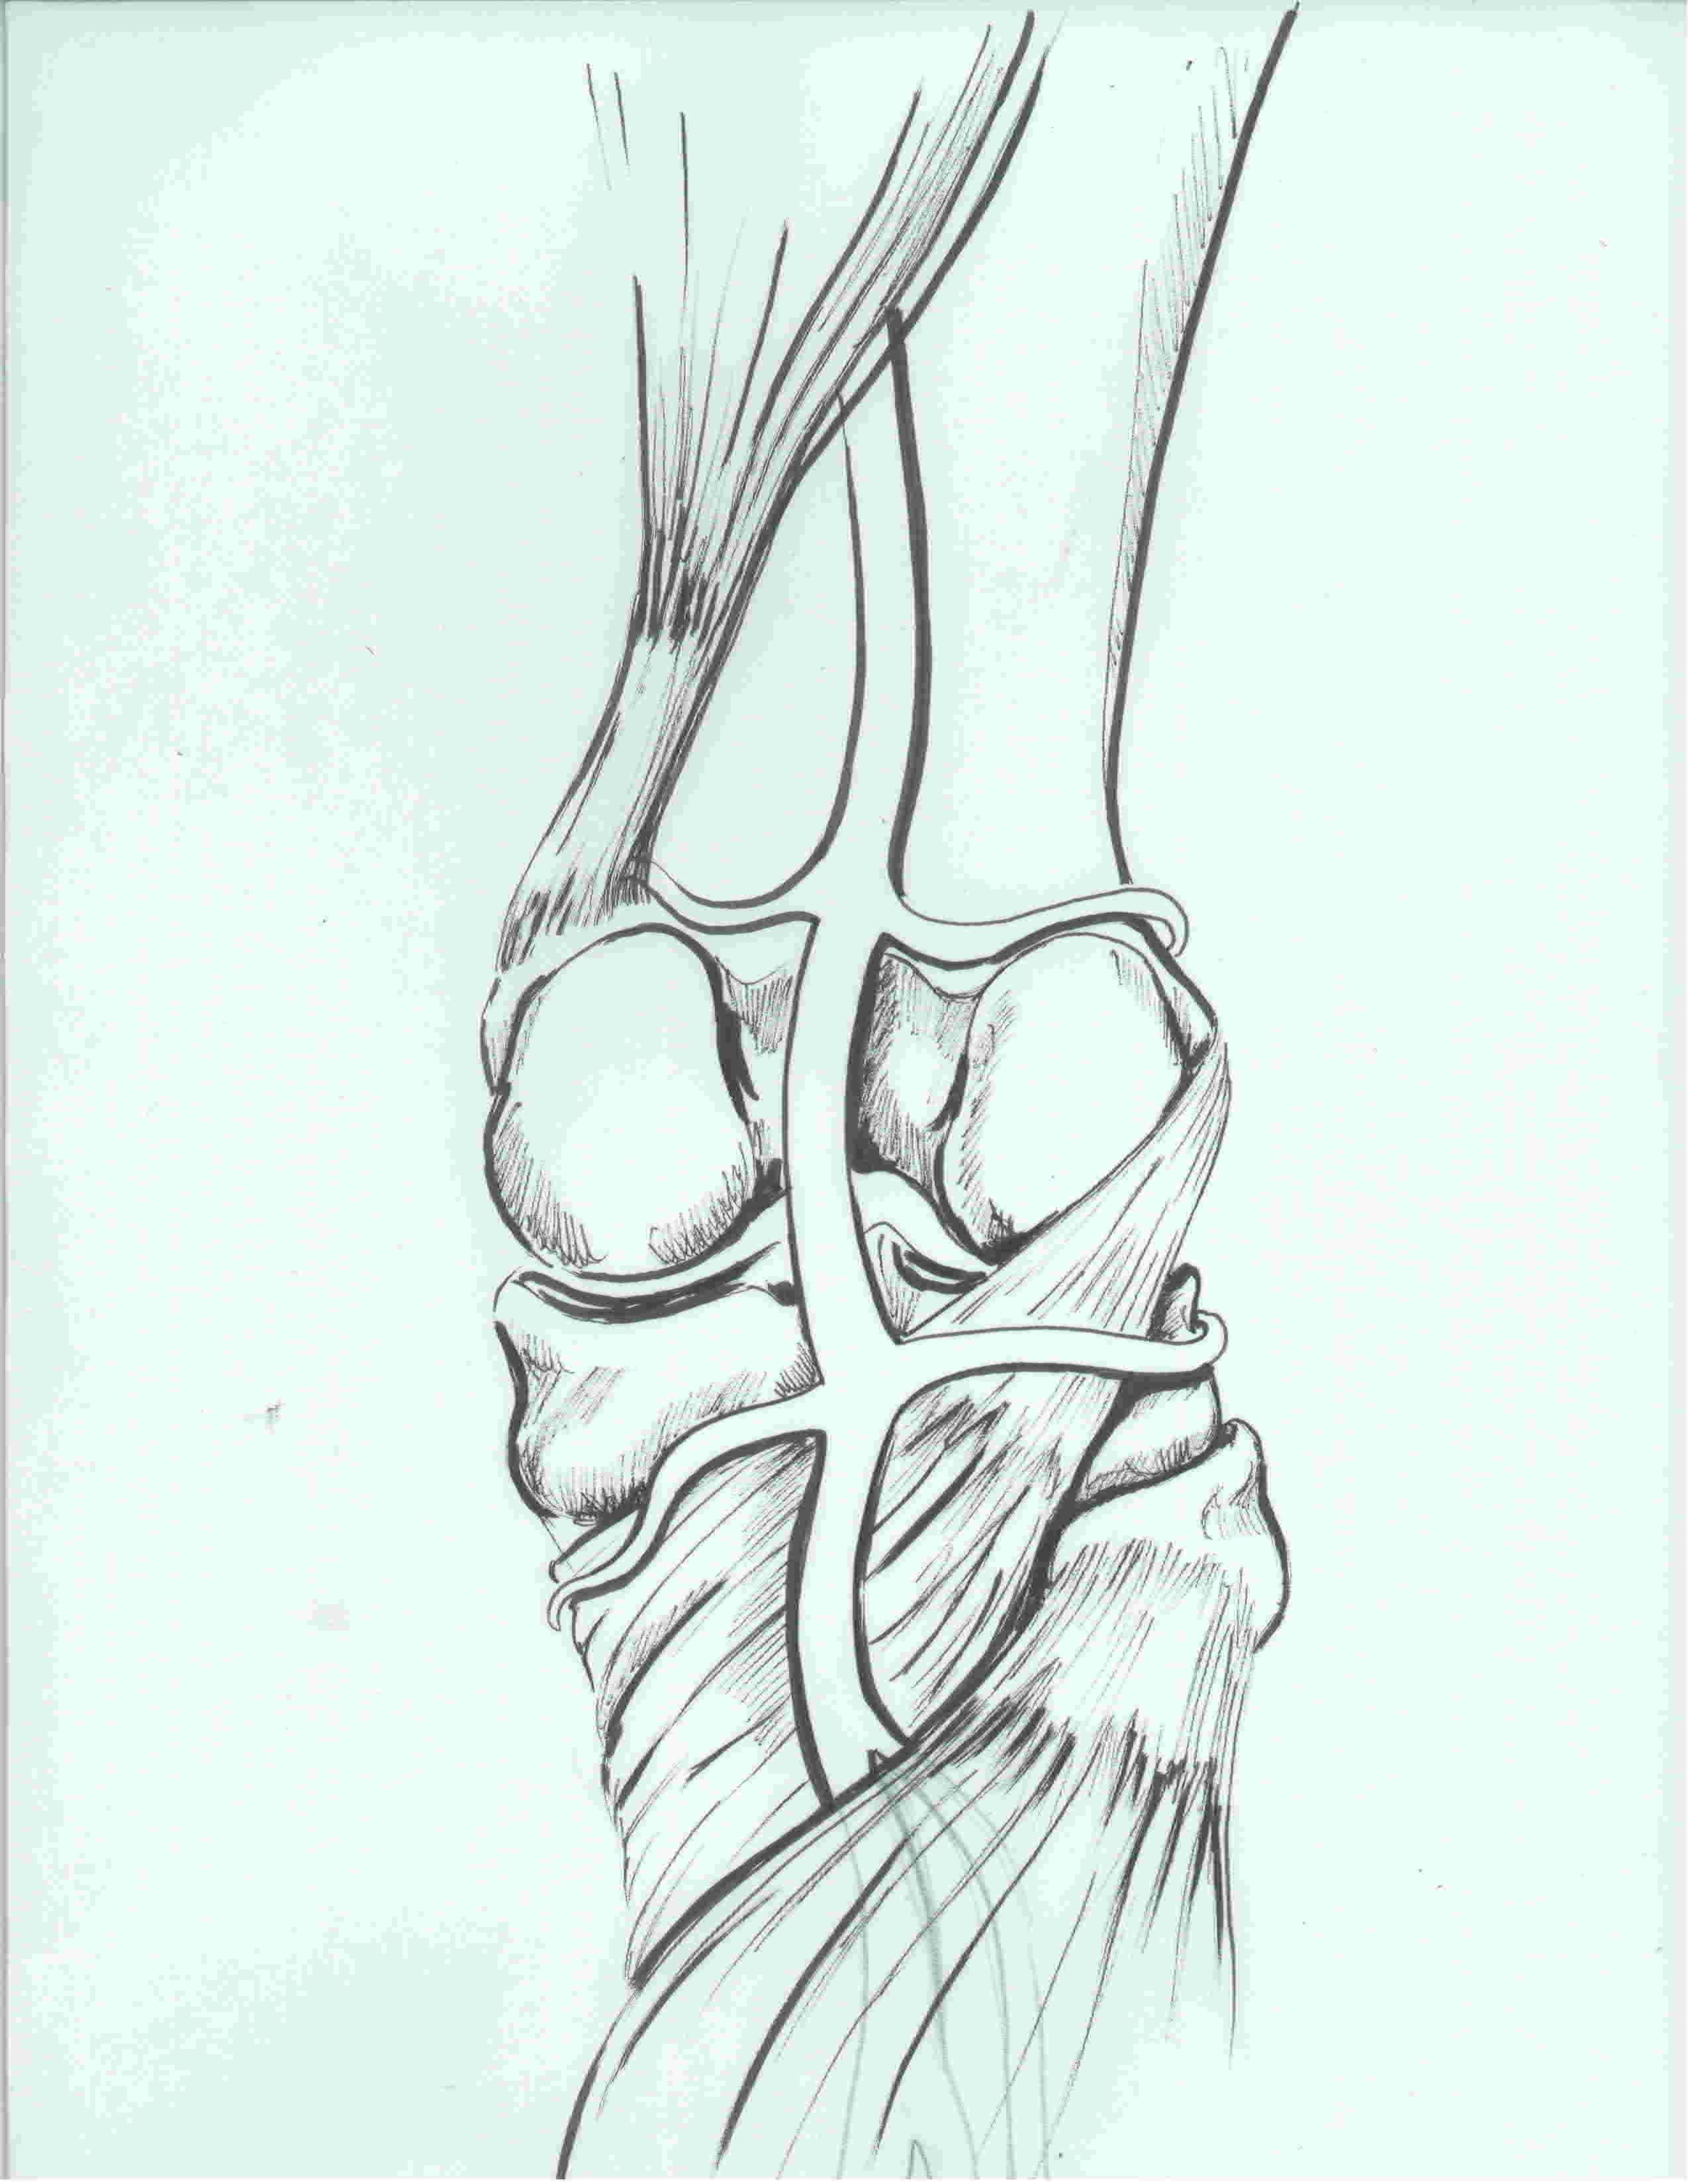 Popliteal arterty illustration